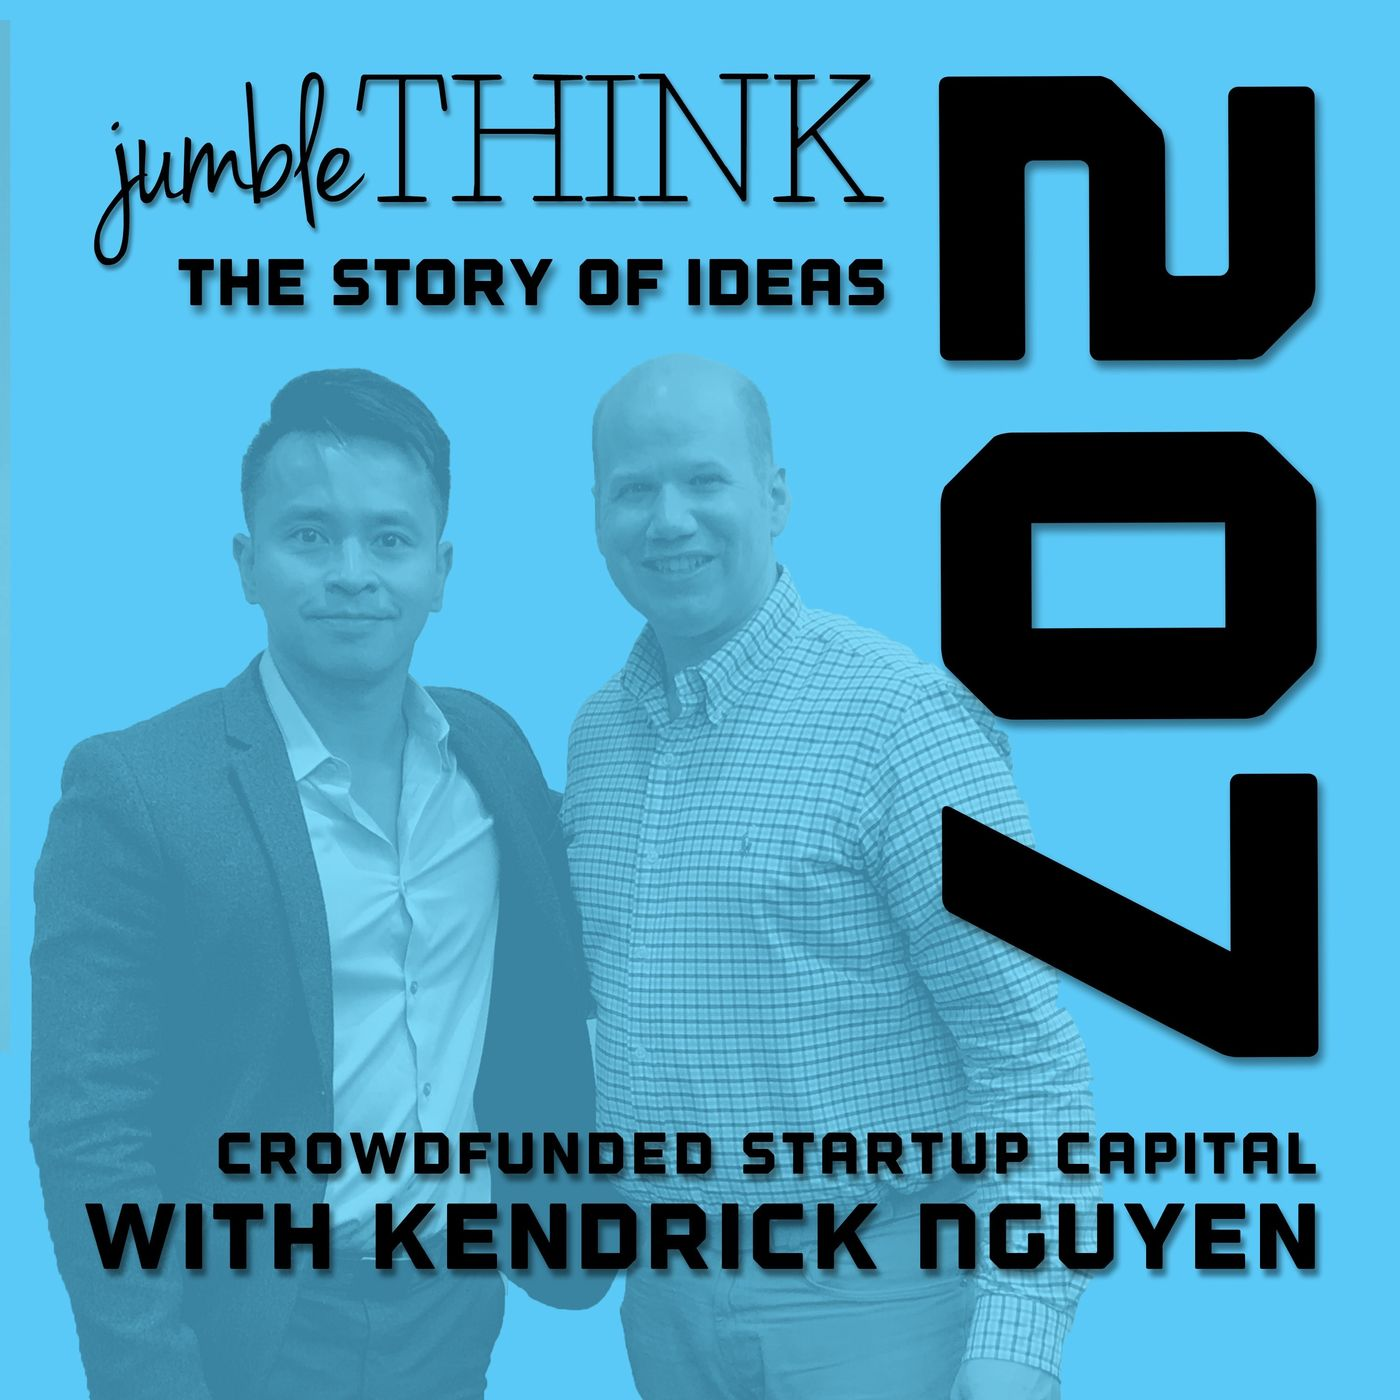 Crowdfunded Startup Capital with Kendrick Nguyen